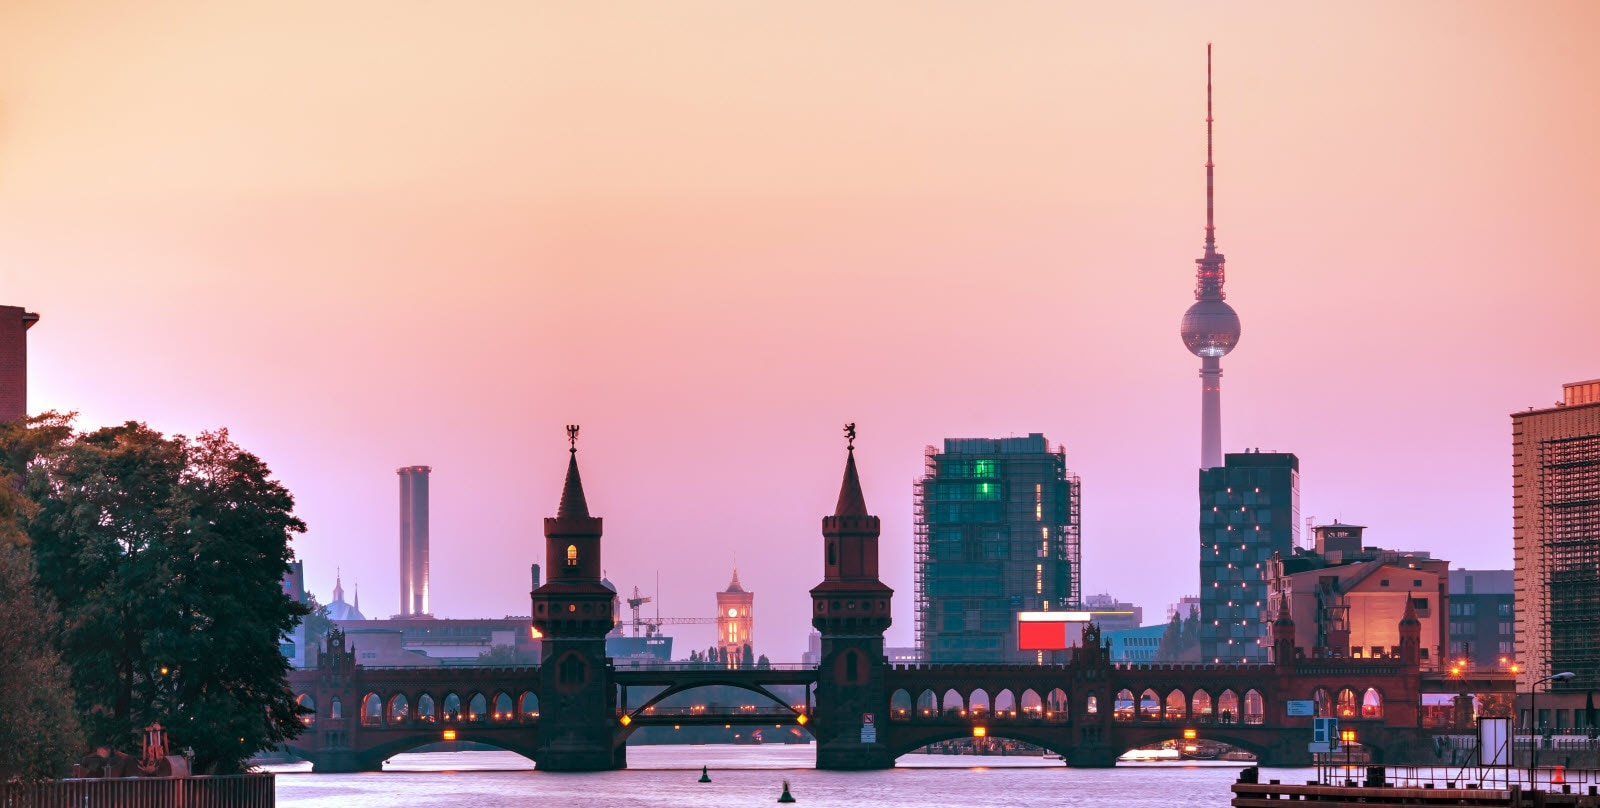 Berlin cityscape with Oberbaum bridge in the evening